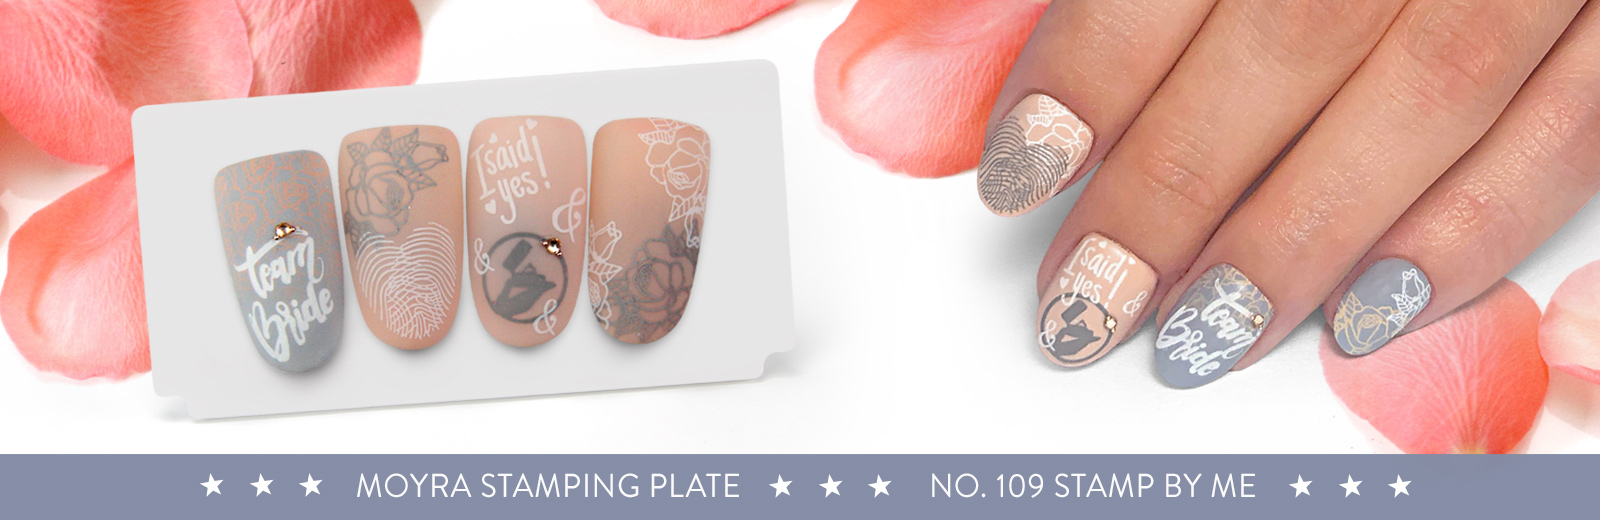 New stamping plate has arrived! No. 109 Stamp by me